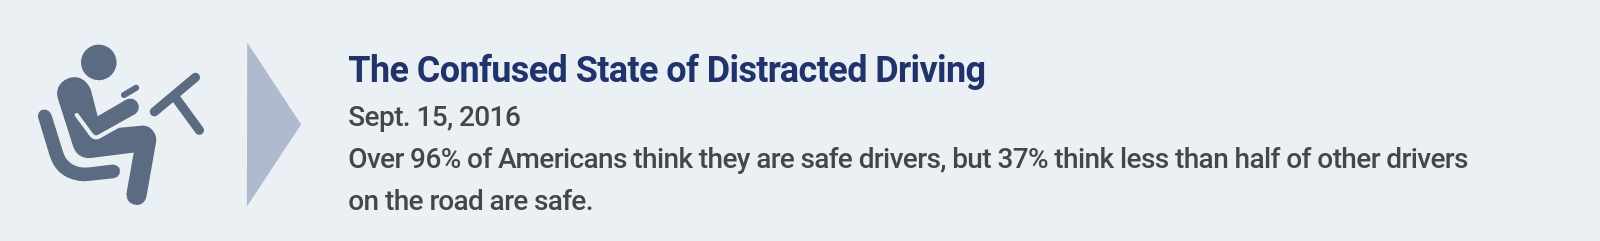 The Confused State of Distracted Driving